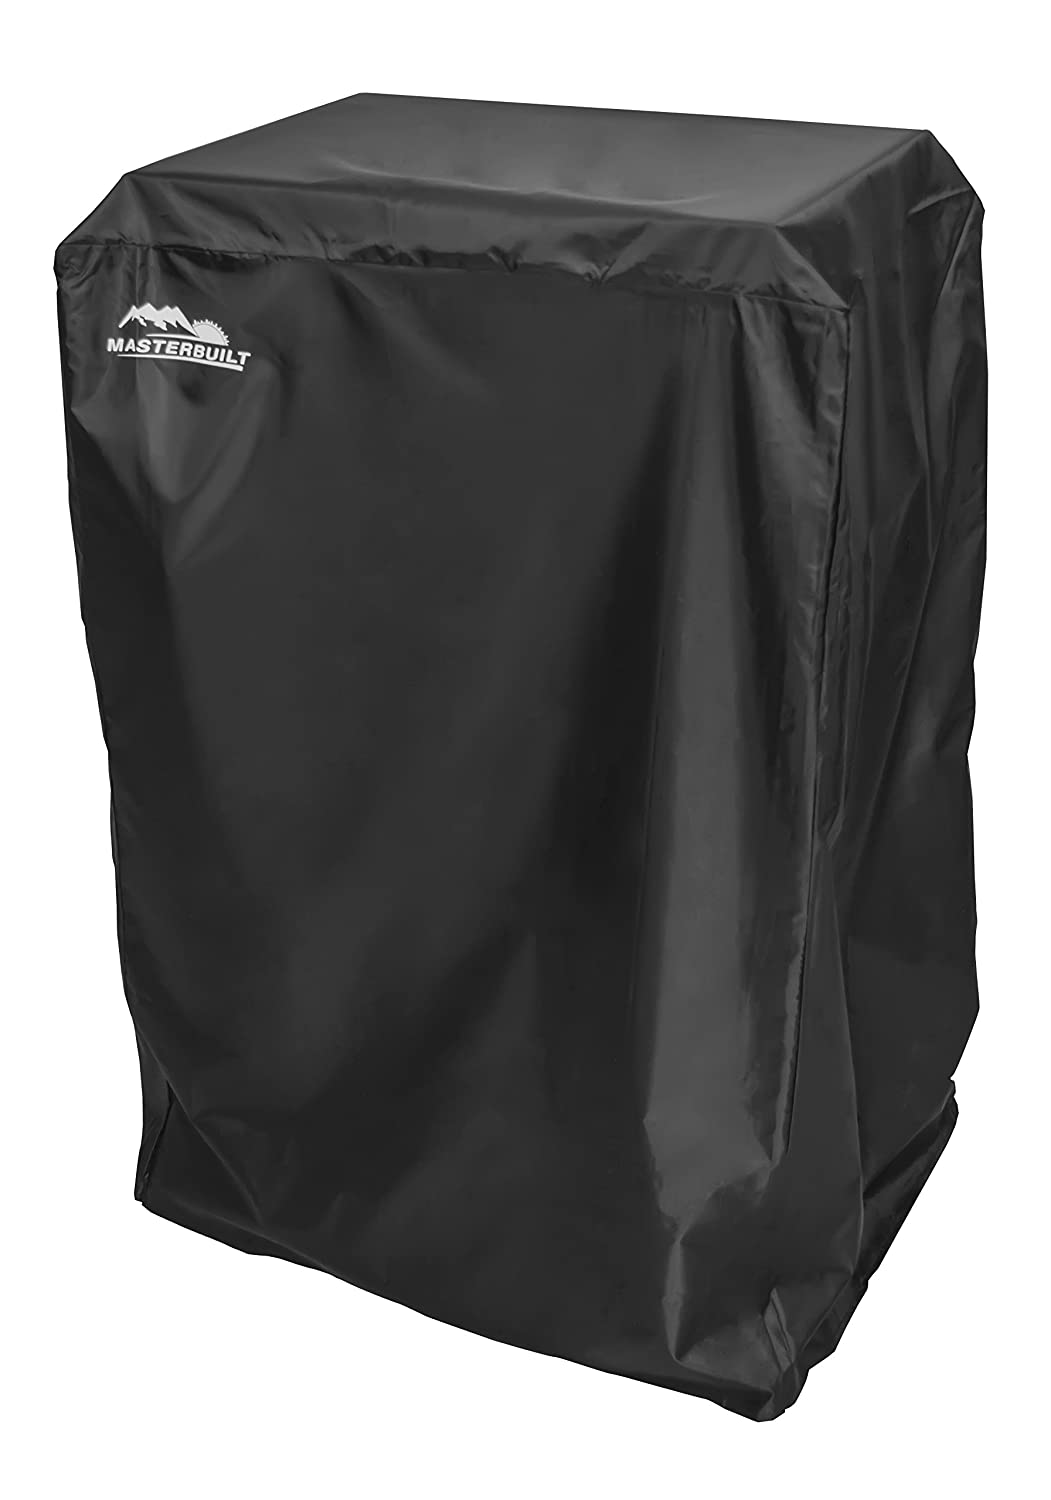 Quilted Kitchen Appliance Covers Amazoncom Masterbuilt 30 Inch Electric Smoker Cover Outdoor